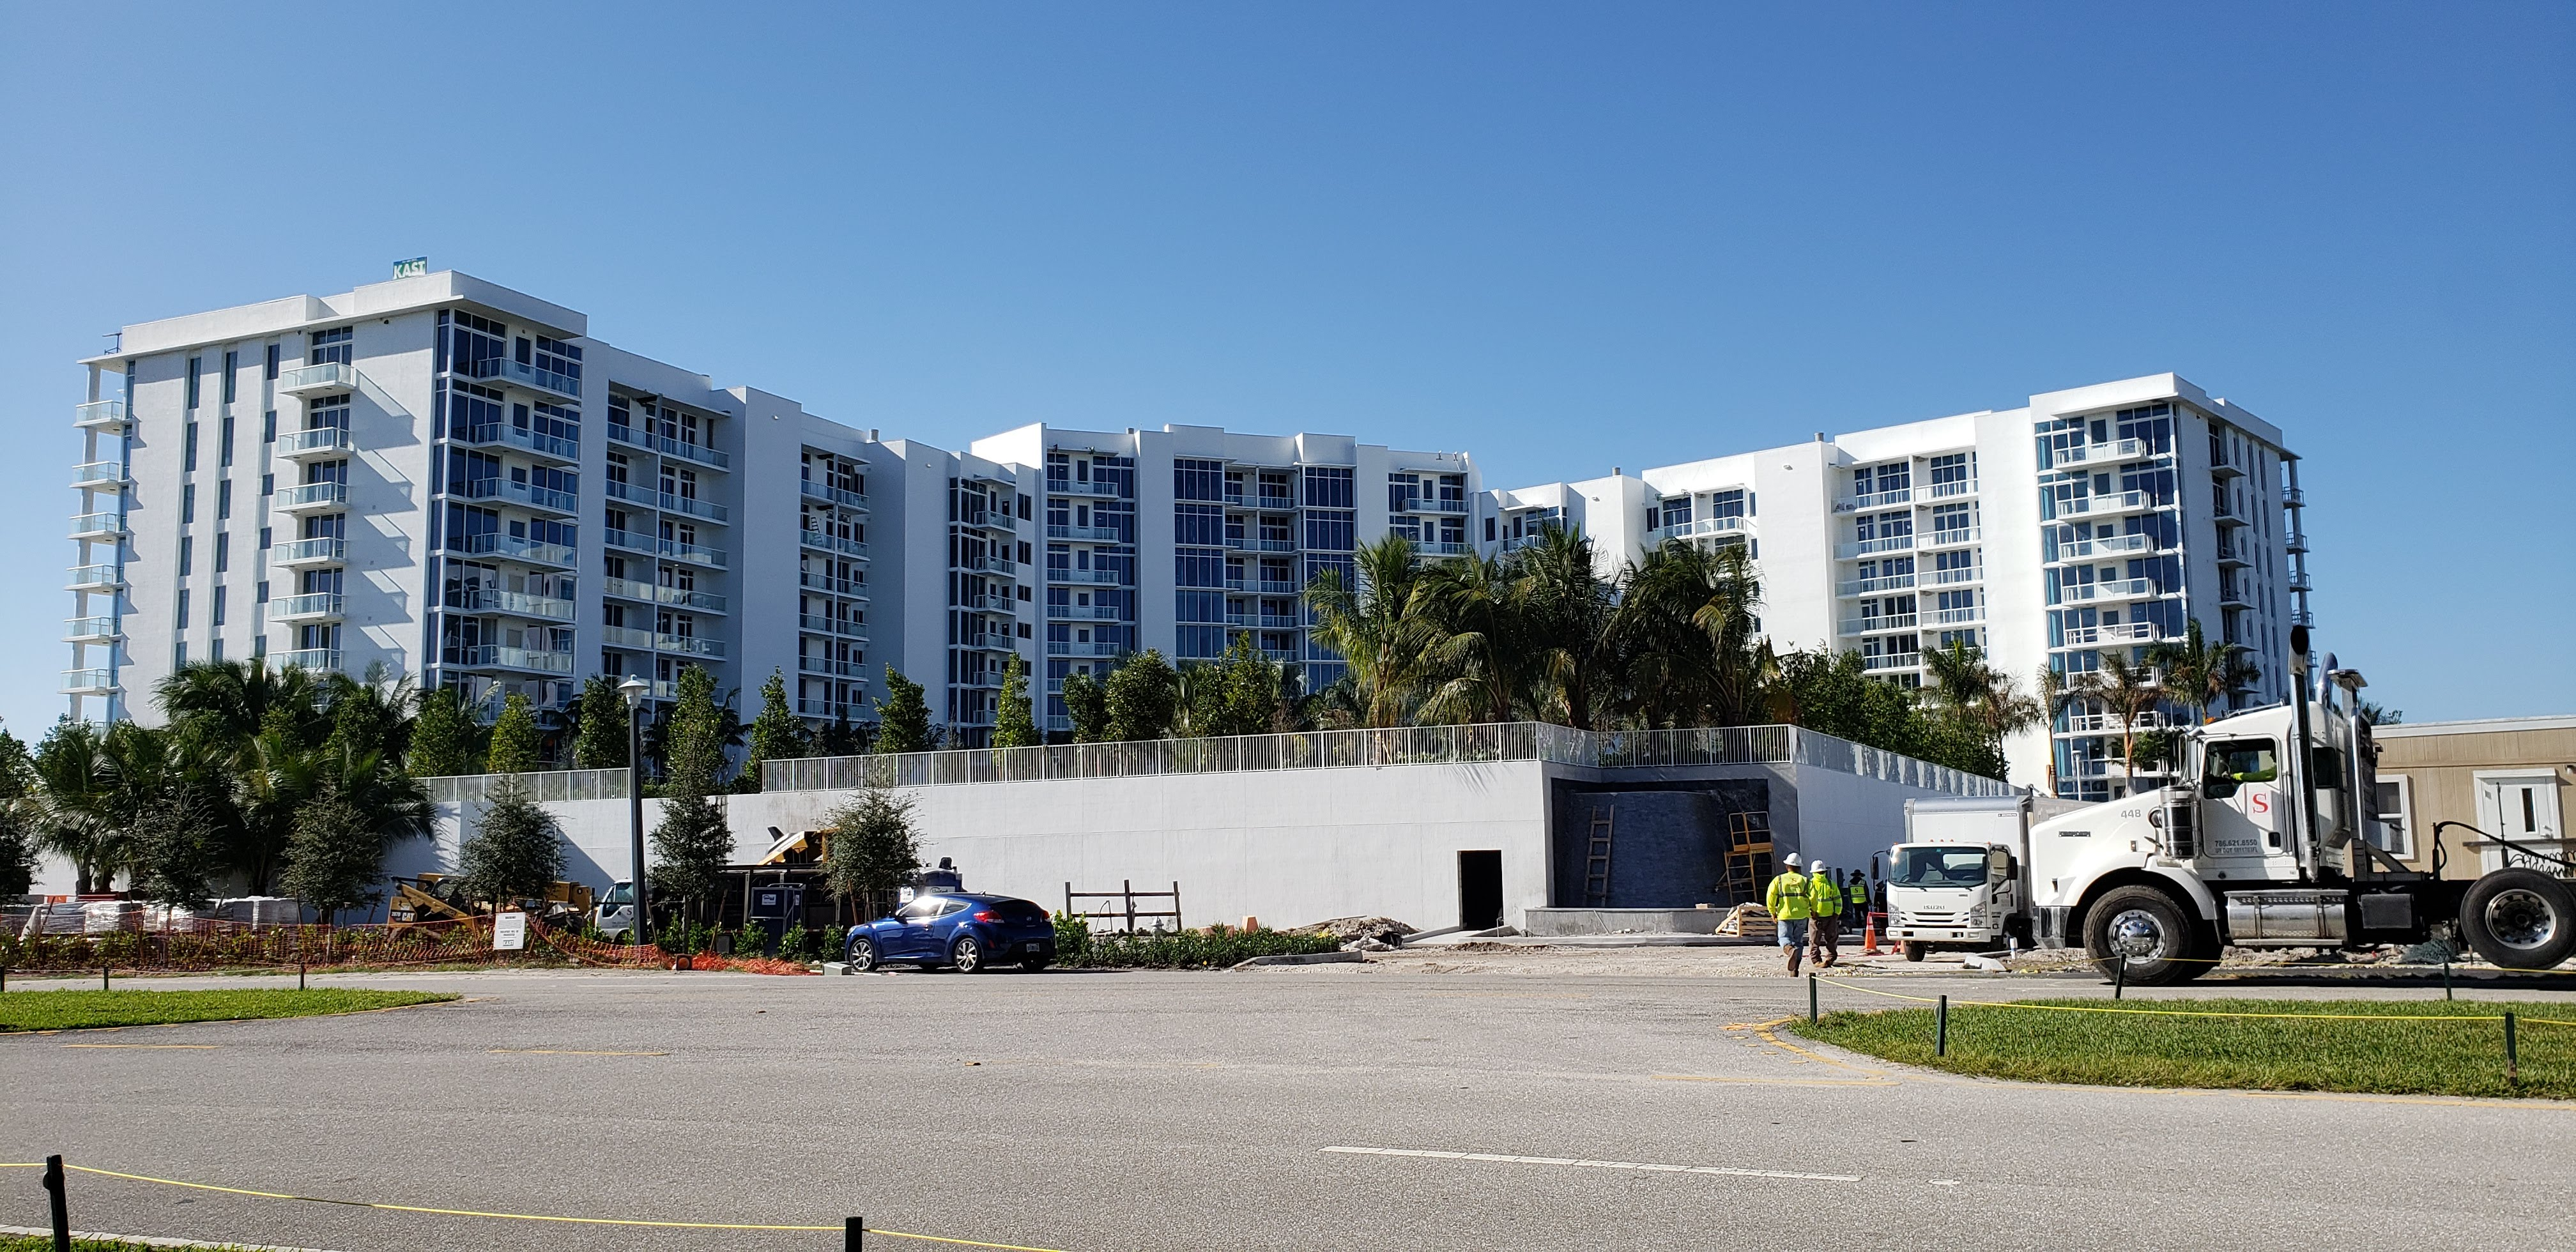 Boca Raton Akoya luxury condo construction in Boca West for Jean-Luc Andriot blog 122618